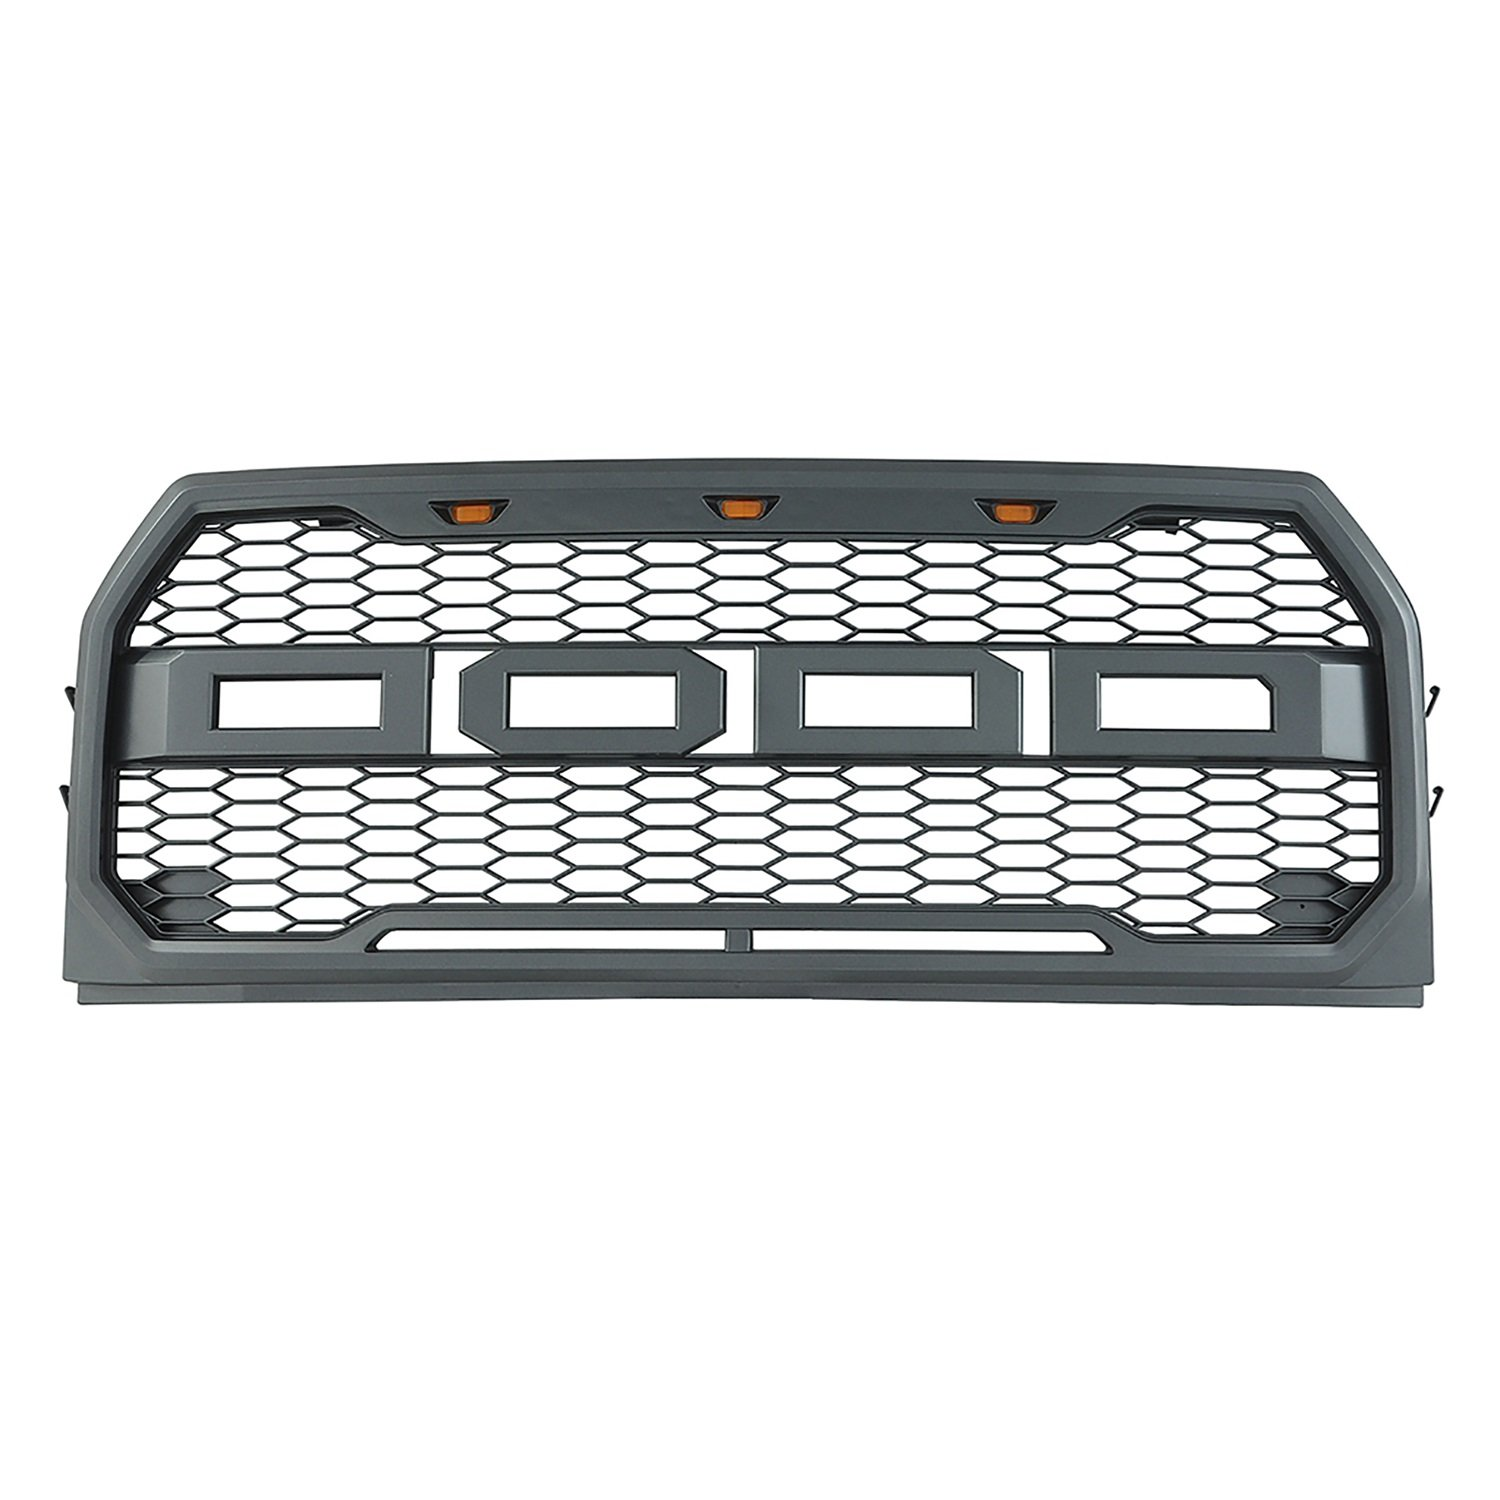 Paramount Restyling 41-0157 Raptor-Style Packaged Grille (15-16 Ford F-150)